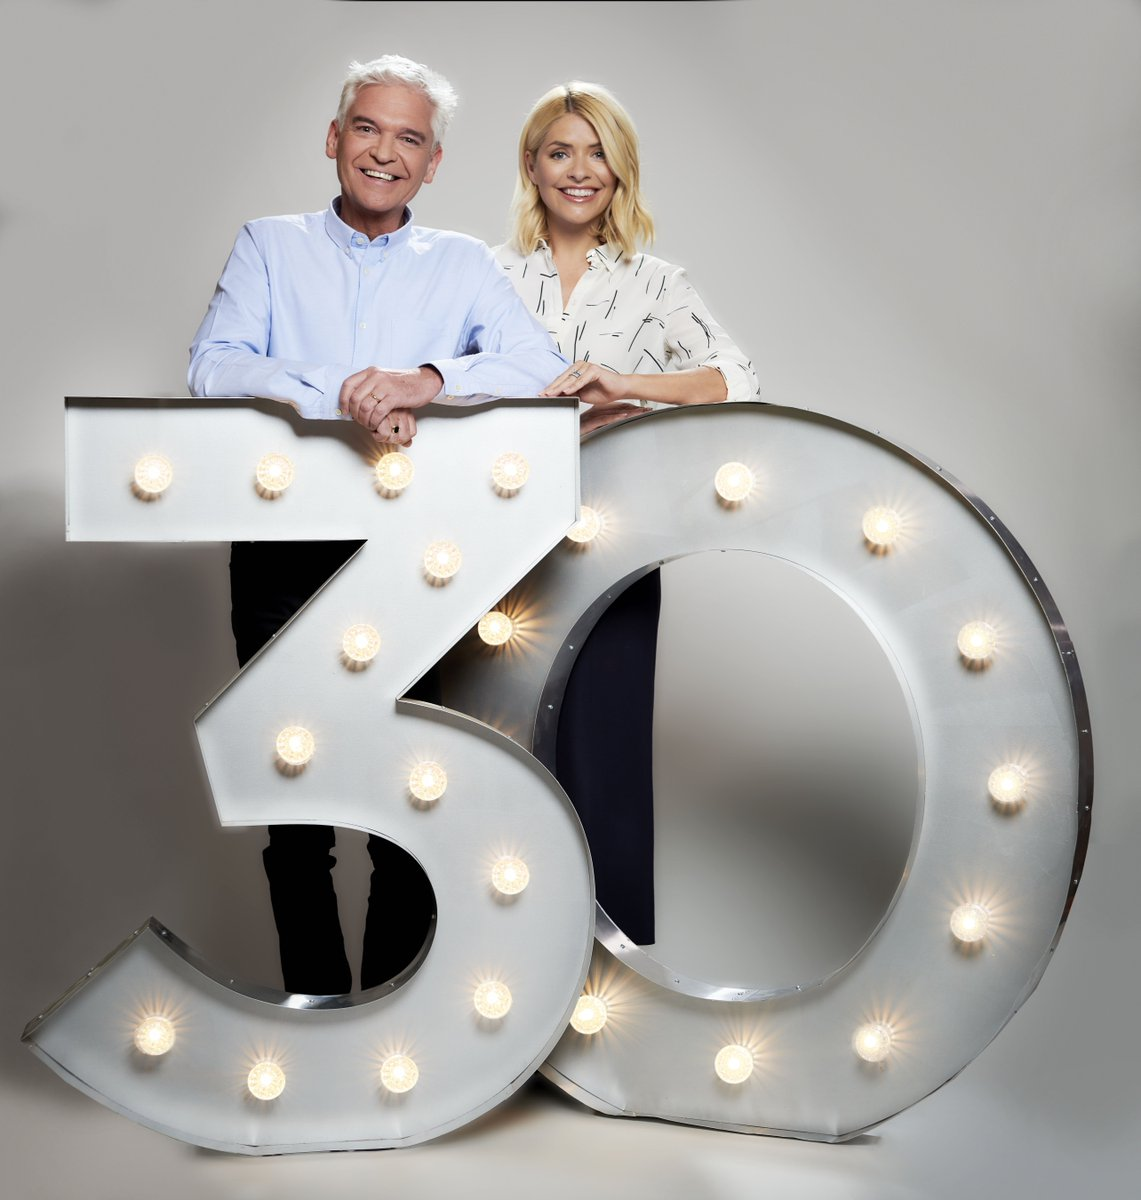 RT @ITV: Established in 1988.  @ThisMorning - 30 Unforgettable Years. Tonight 7.30pm @ITV. @hollywills @schofe https://t.co/bTblApE2CH